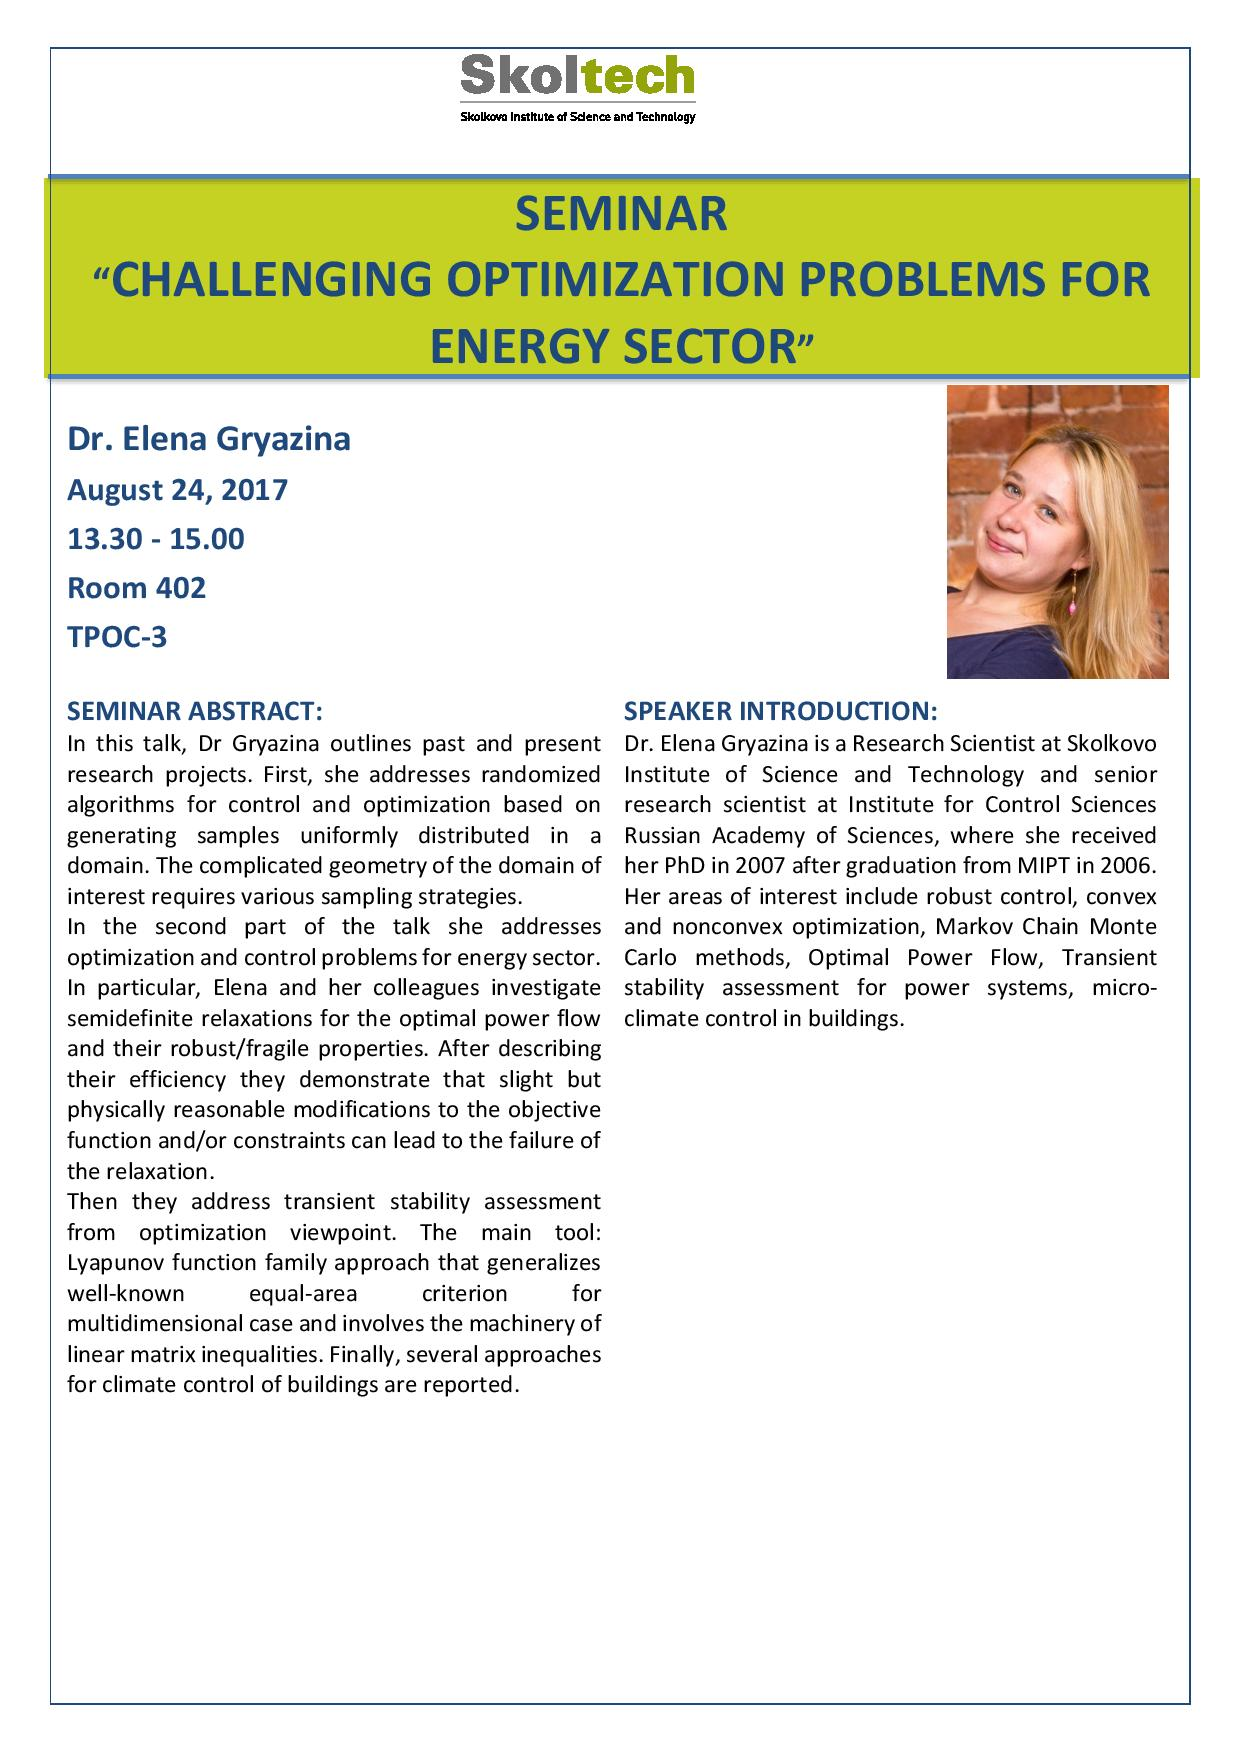 dr-elena-gryazina-august-24-at-1-30-pm-seminar-announcement-page-001